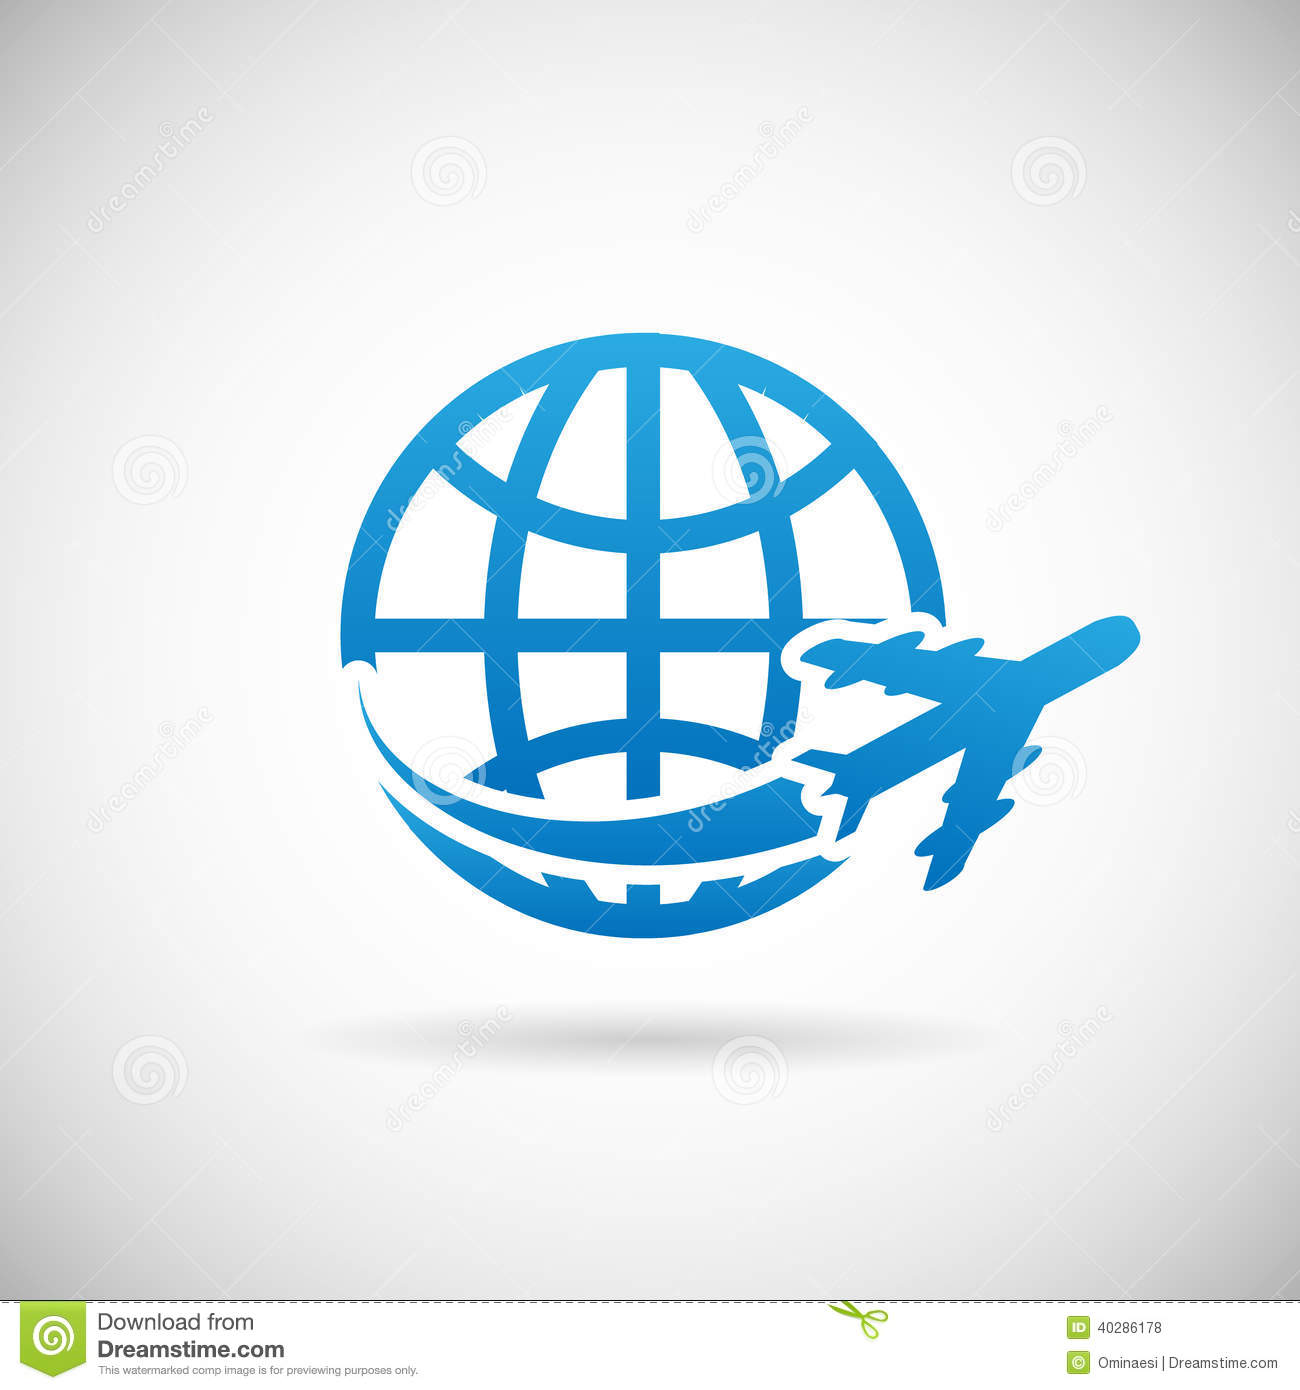 plane route map with Royalty Free Stock Photos World Travel Symbol Airplane Globe Icon Design Template Vector Illustration Image40286178 on Swakopmund besides Tcdd harita together with Ch06 in addition Ilulissat together with En.